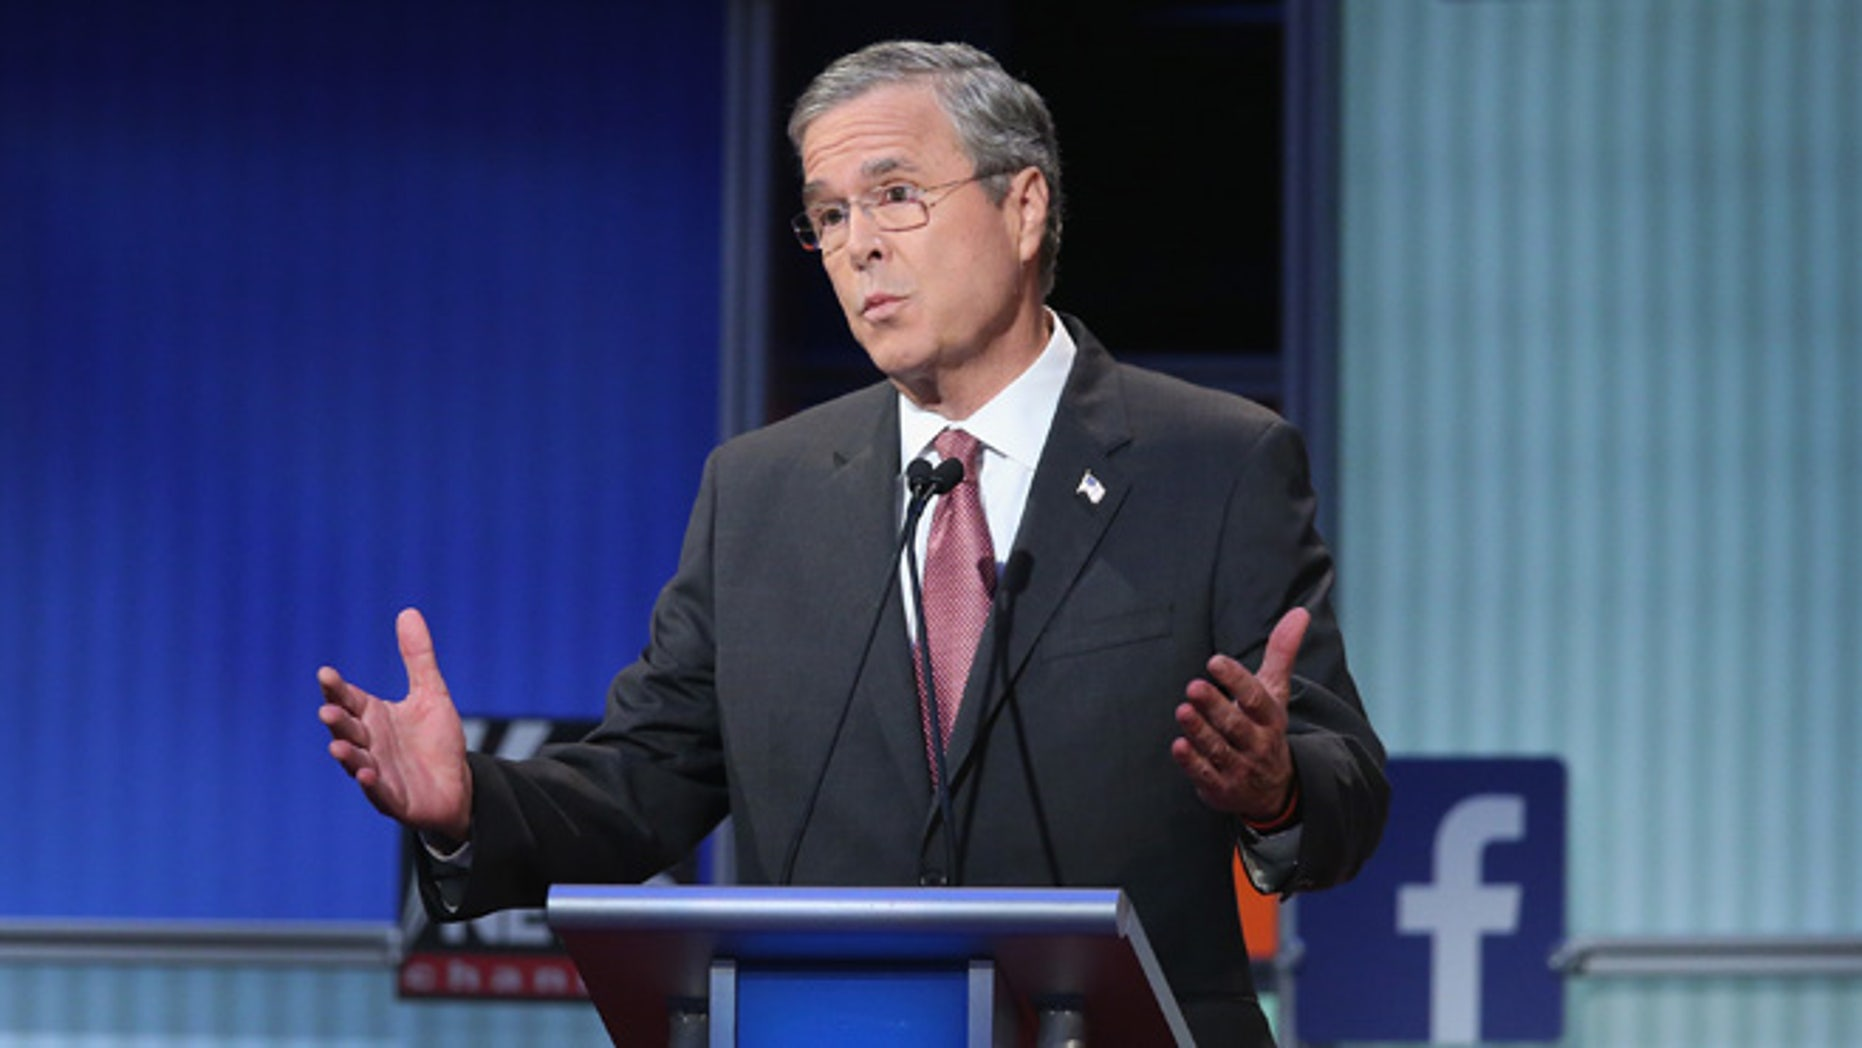 CLEVELAND, OH - AUGUST 06:  Republican presidential candidate Jeb Bush fields a question during the first Republican presidential debate hosted by Fox News and Facebook at the Quicken Loans Arena on August 6, 2015 in Cleveland, Ohio. The top ten GOP candidates were selected to participate in the debate based on their rank in an average of the five most recent political polls.  (Photo by Scott Olson/Getty Images)